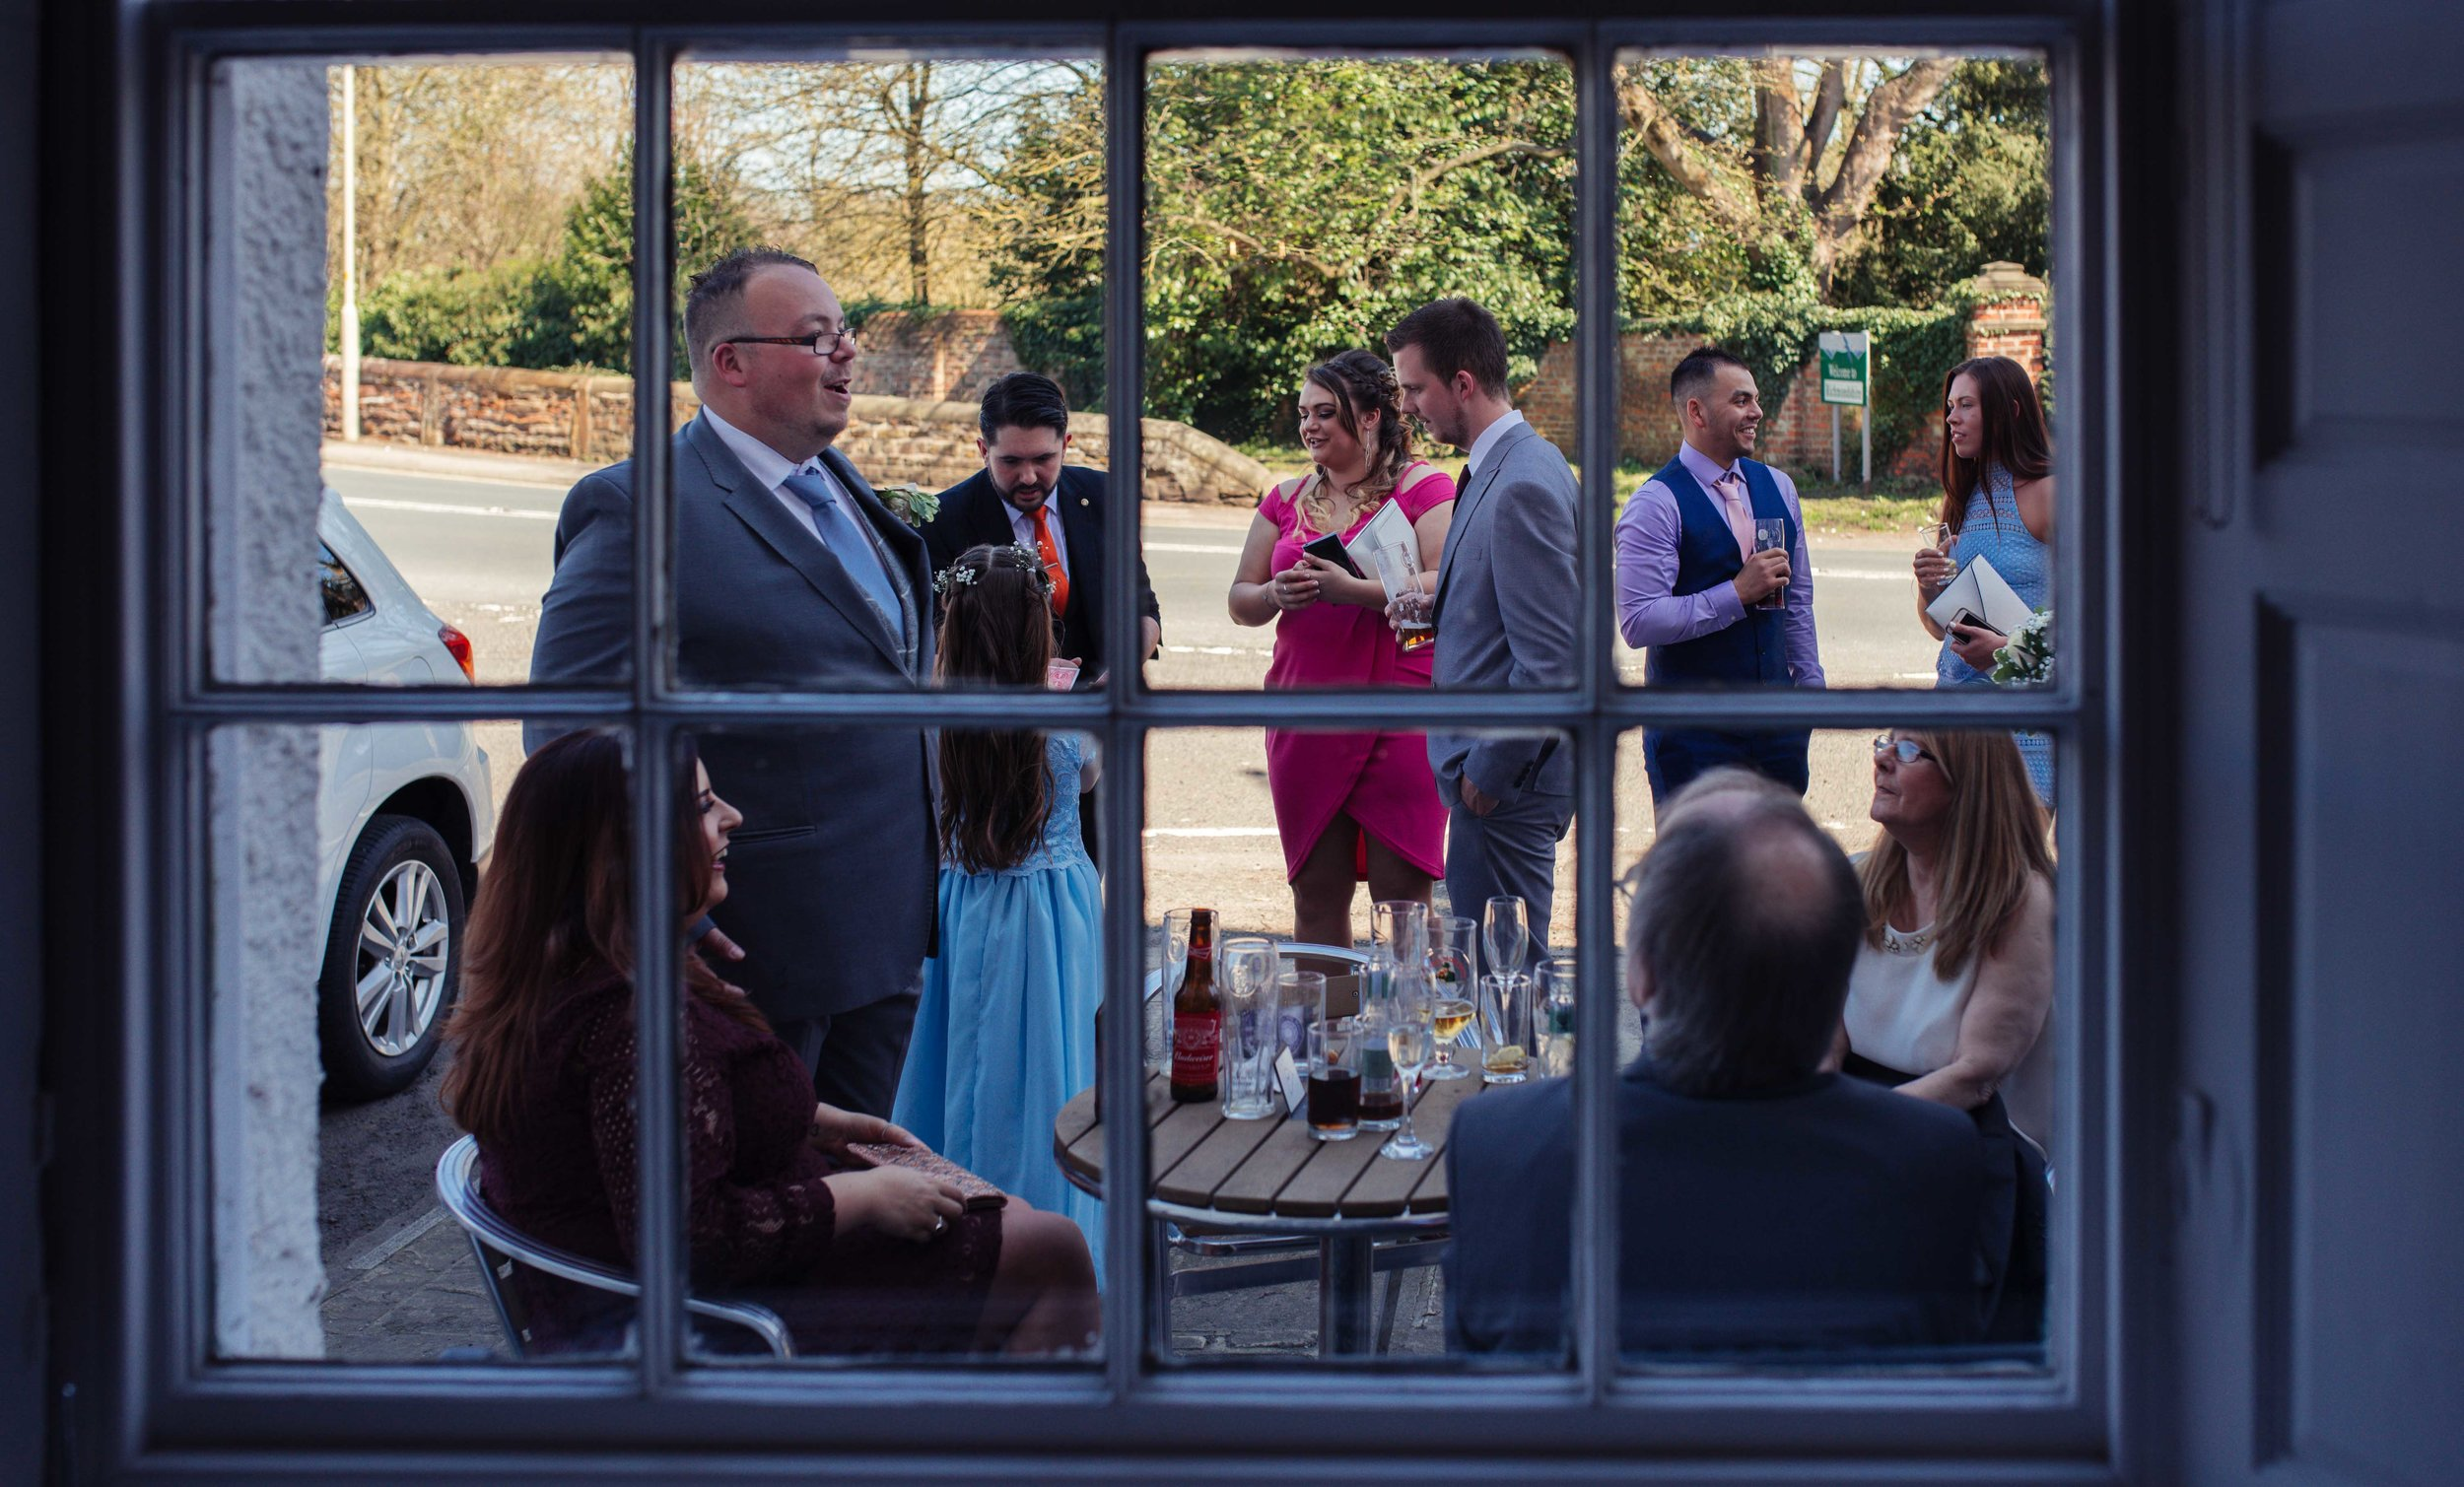 Guests assemble outside the venue in the sunshine